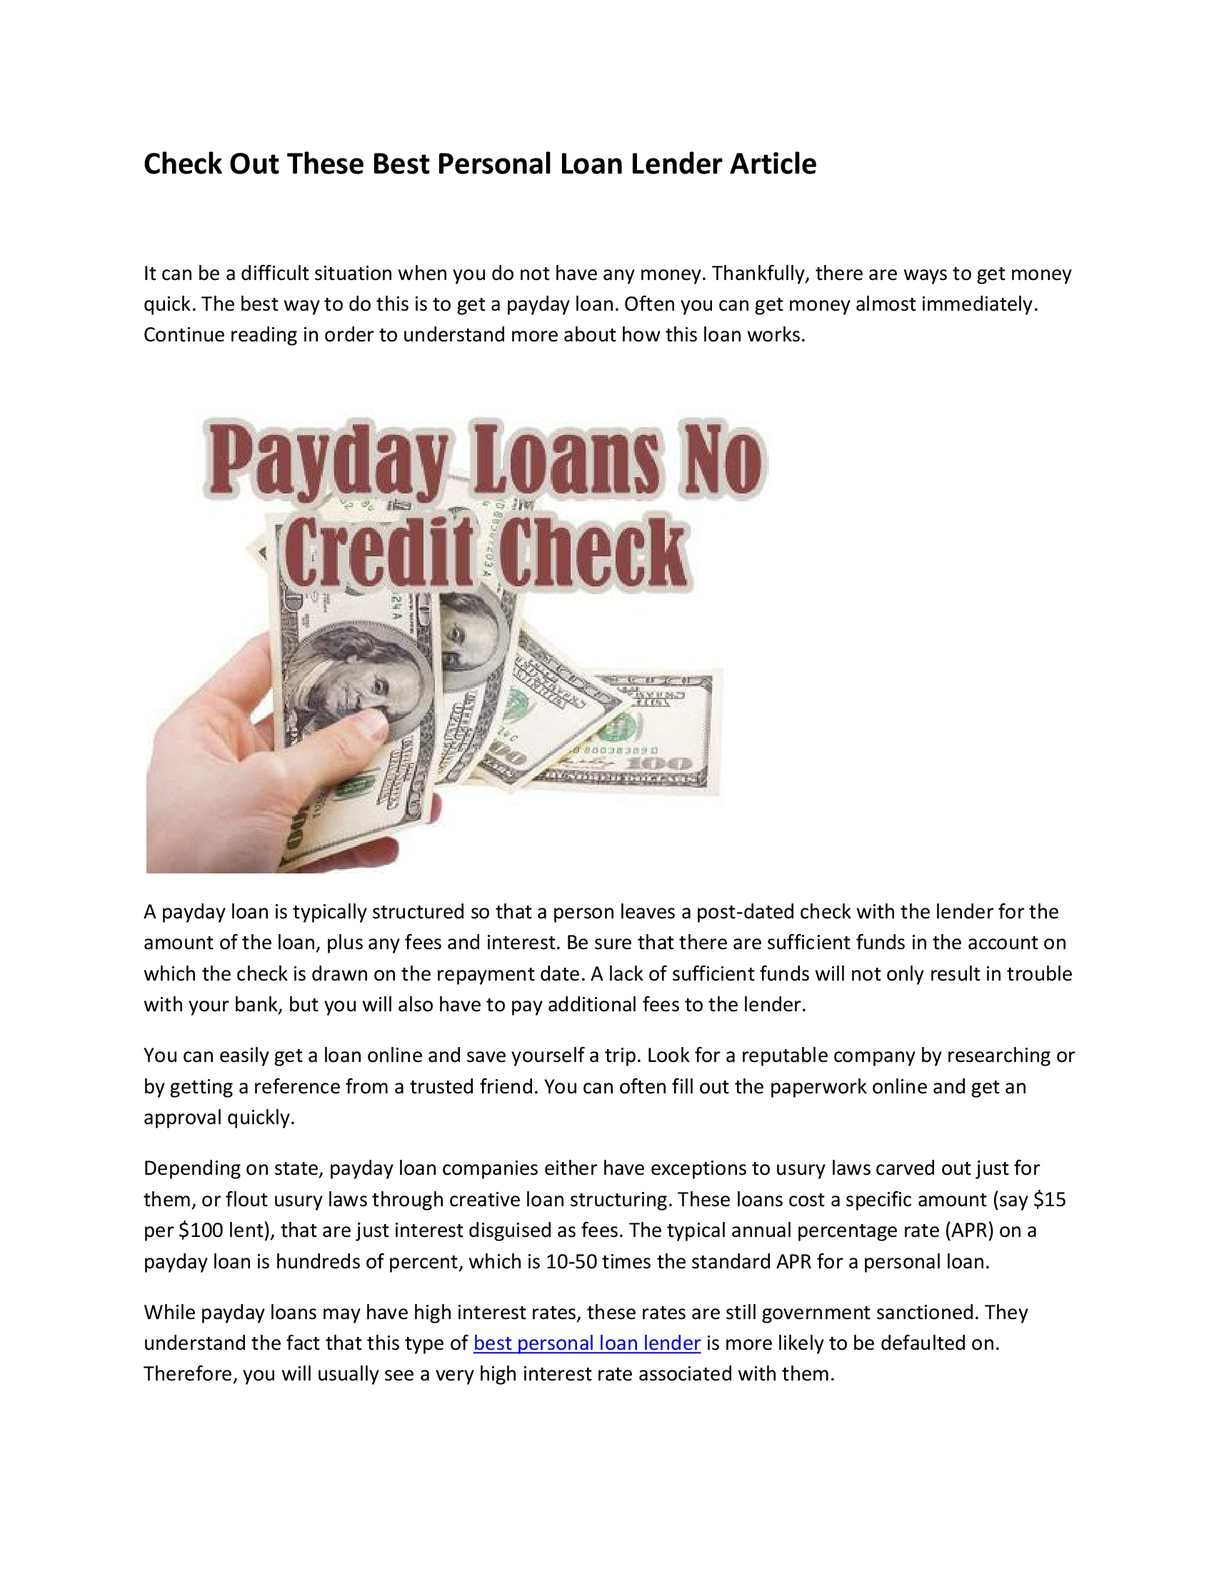 Post dating loan documents